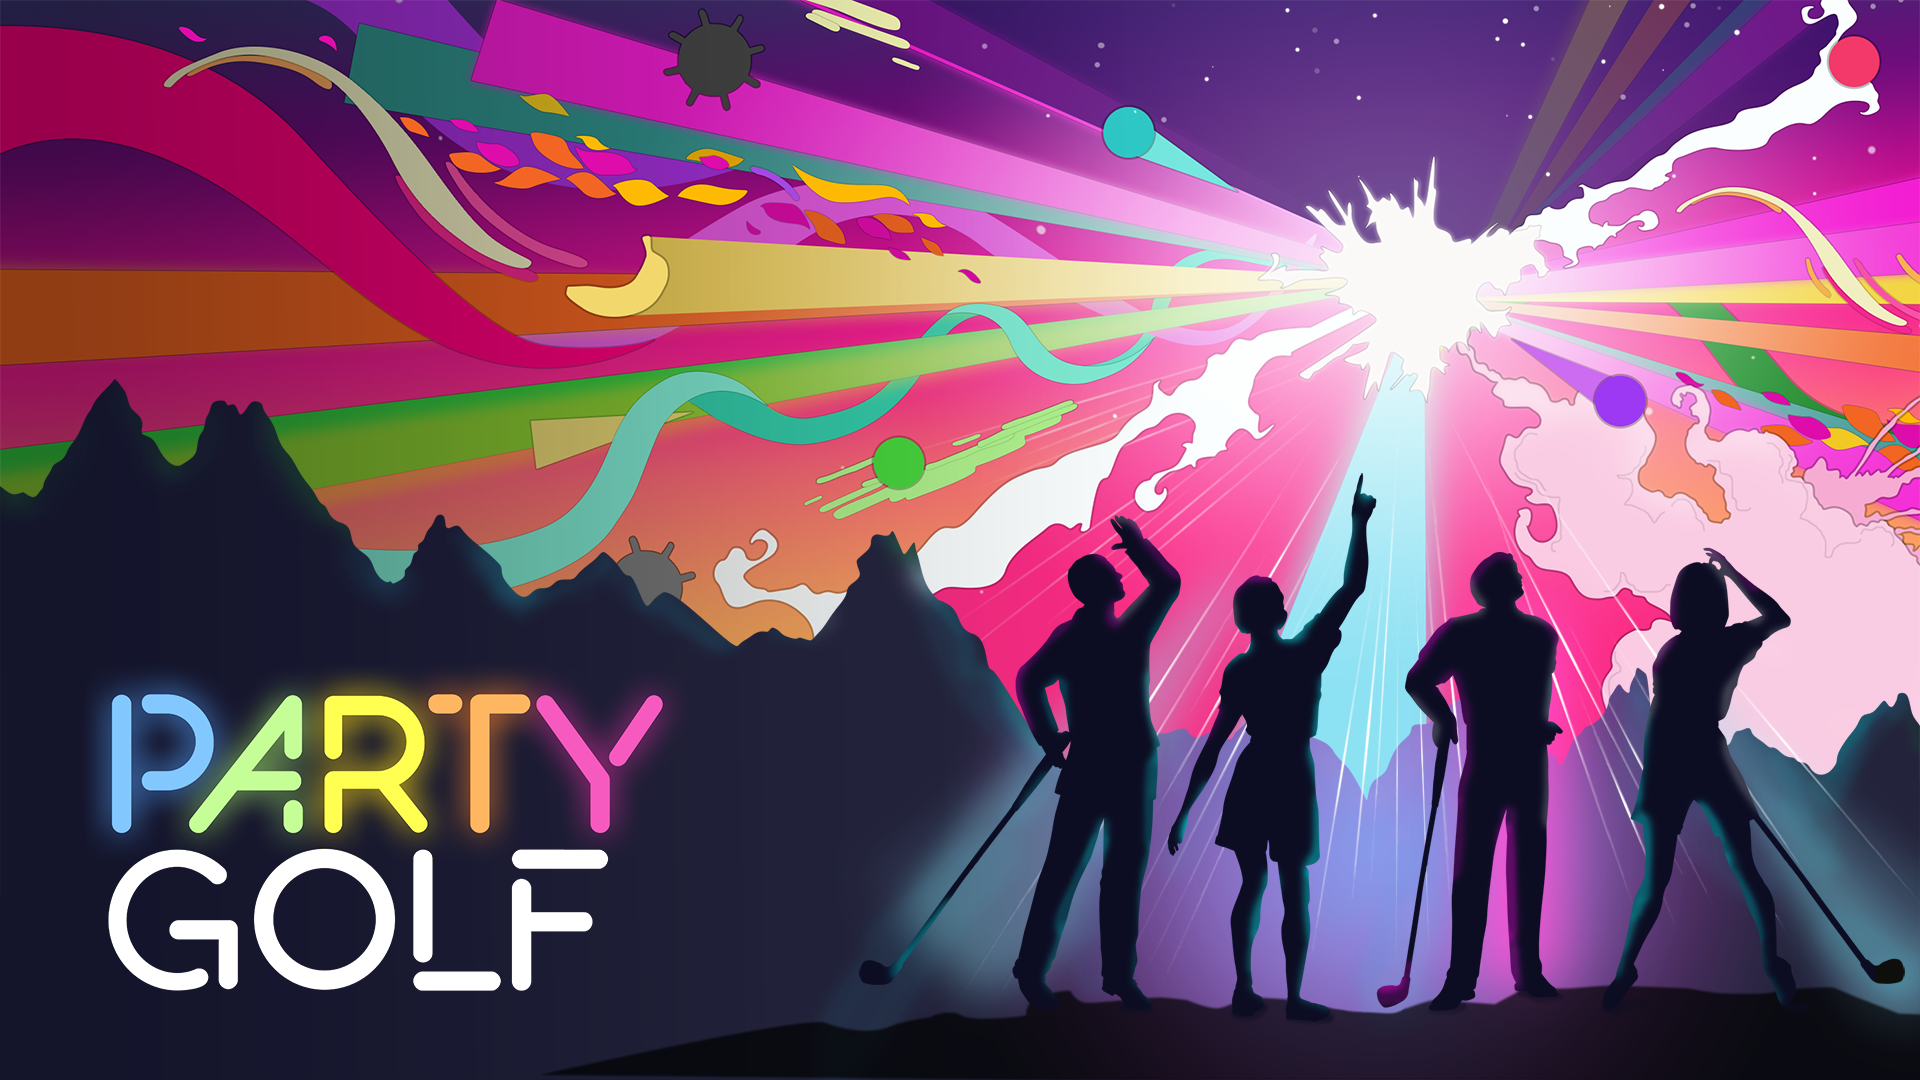 PartyGolf1920.png